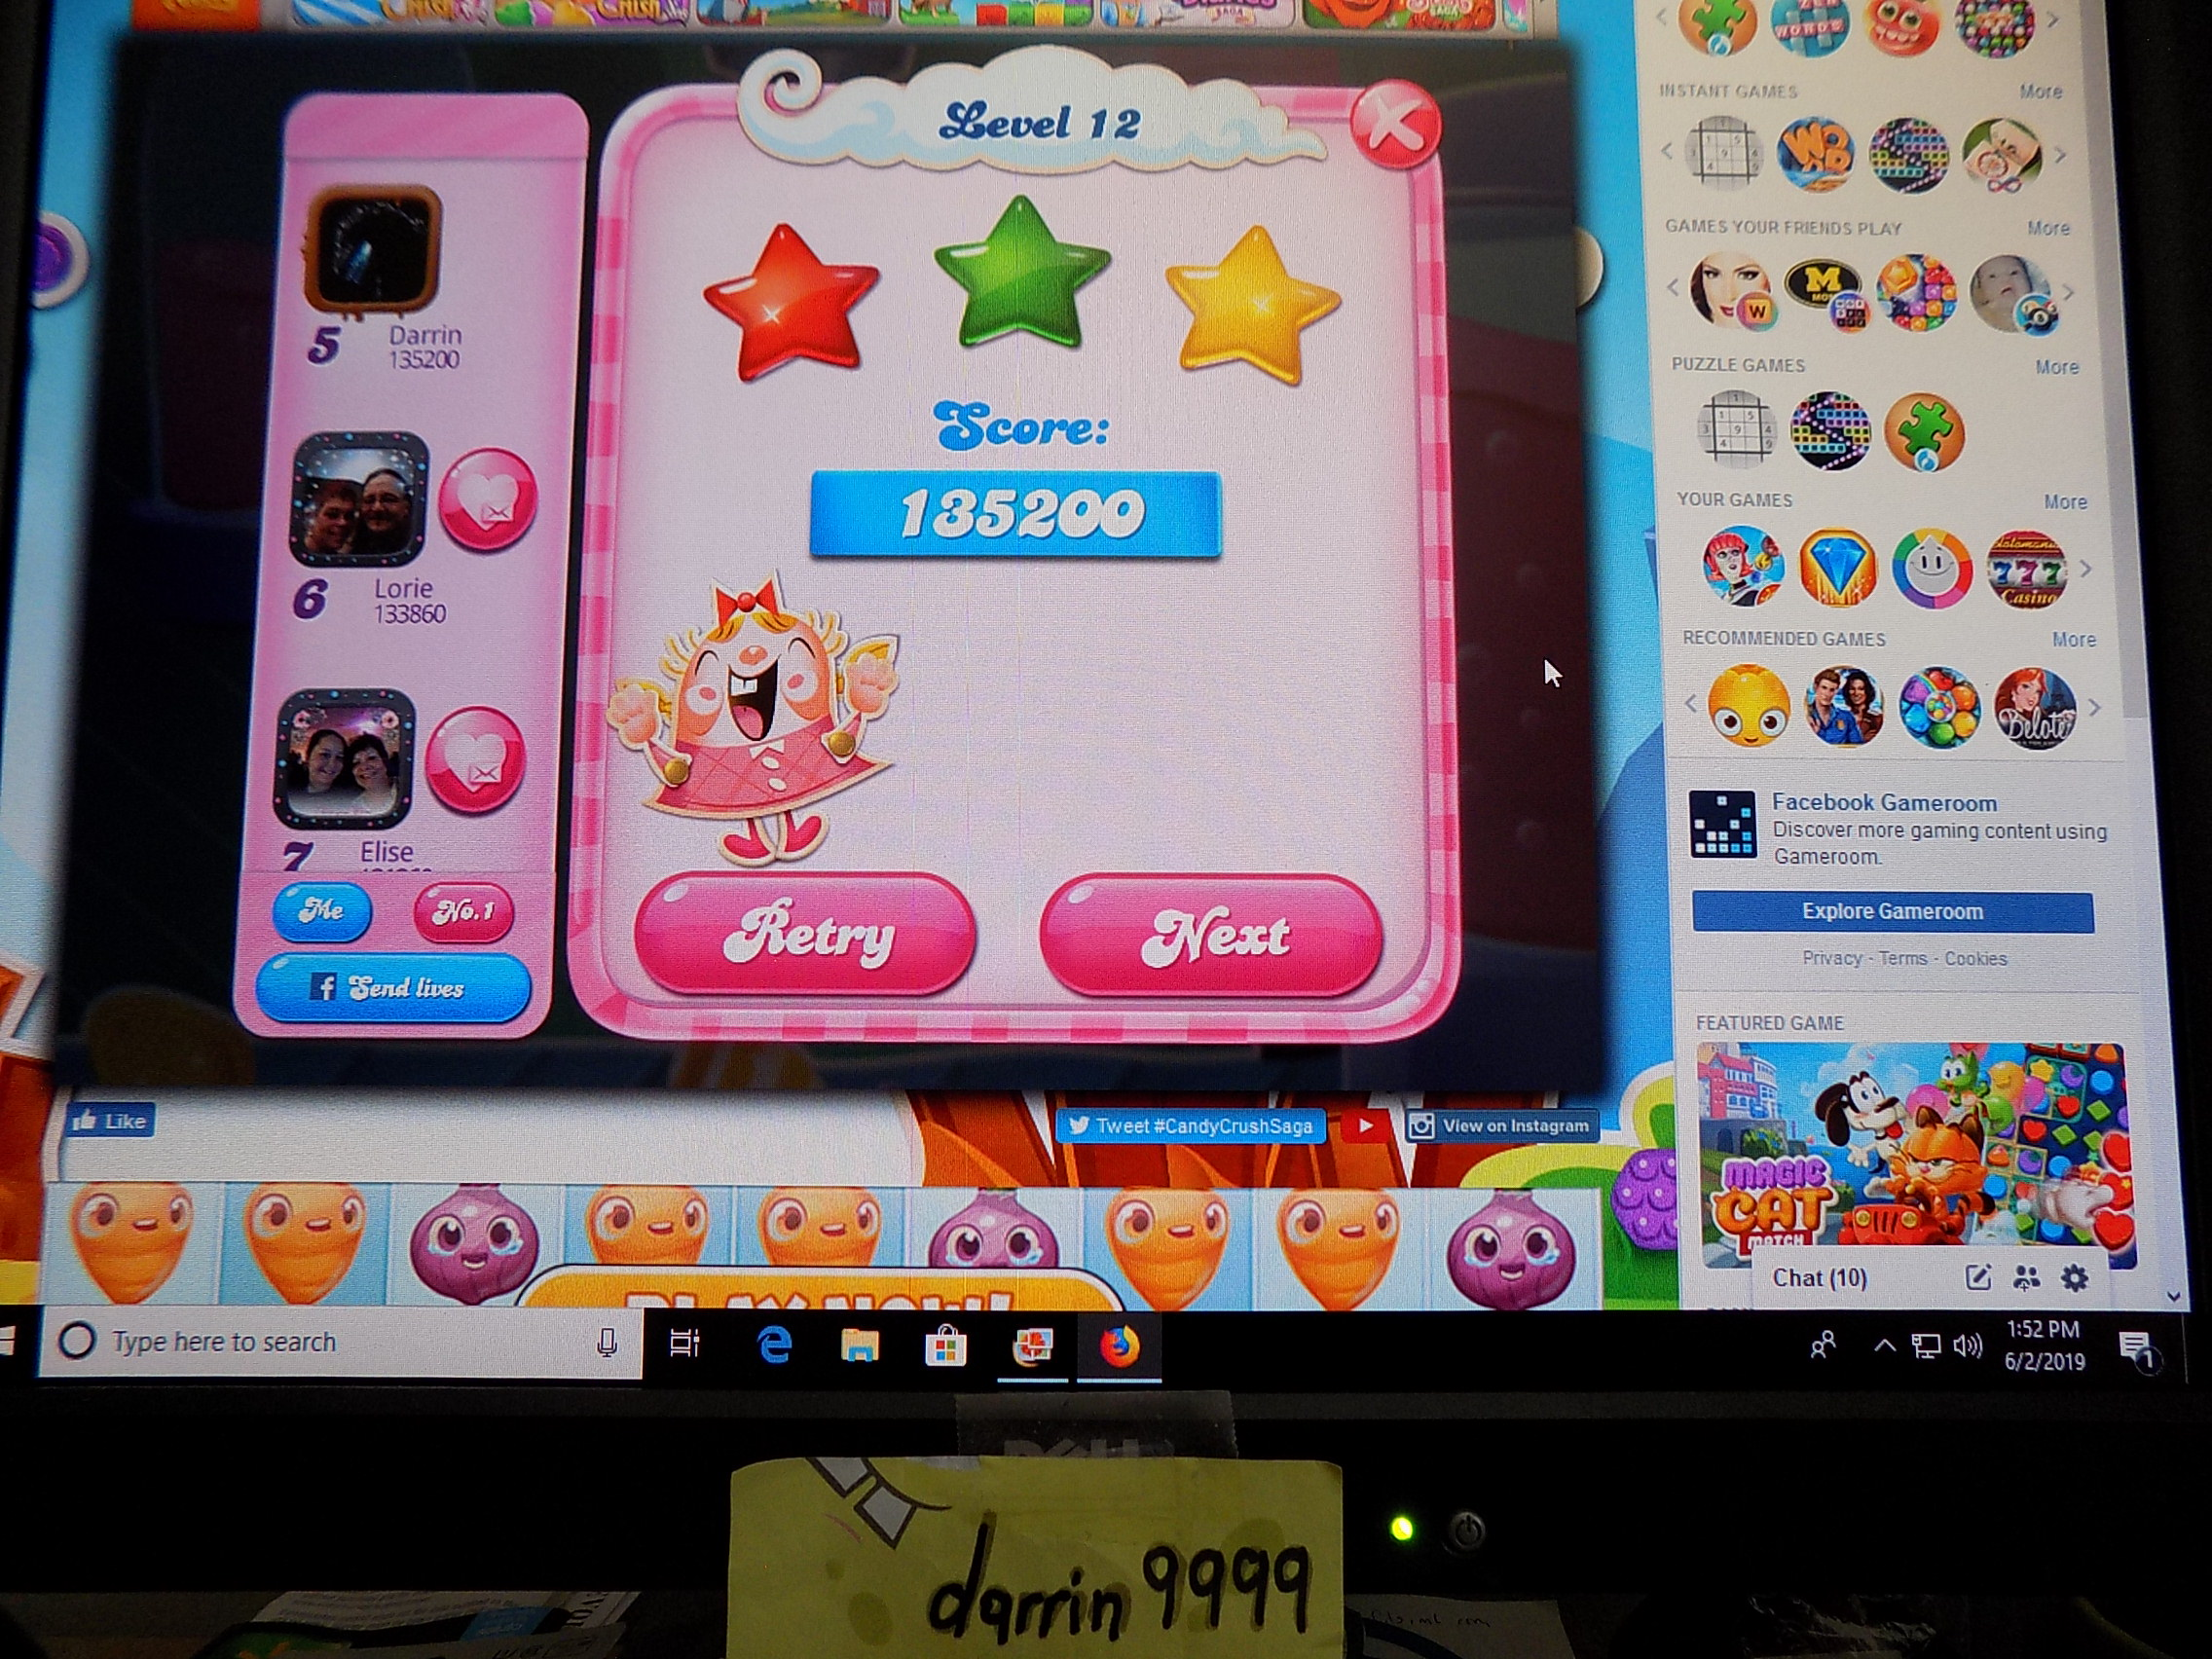 darrin9999: Candy Crush Saga: Level 012 (Web) 135,200 points on 2019-06-02 12:58:17